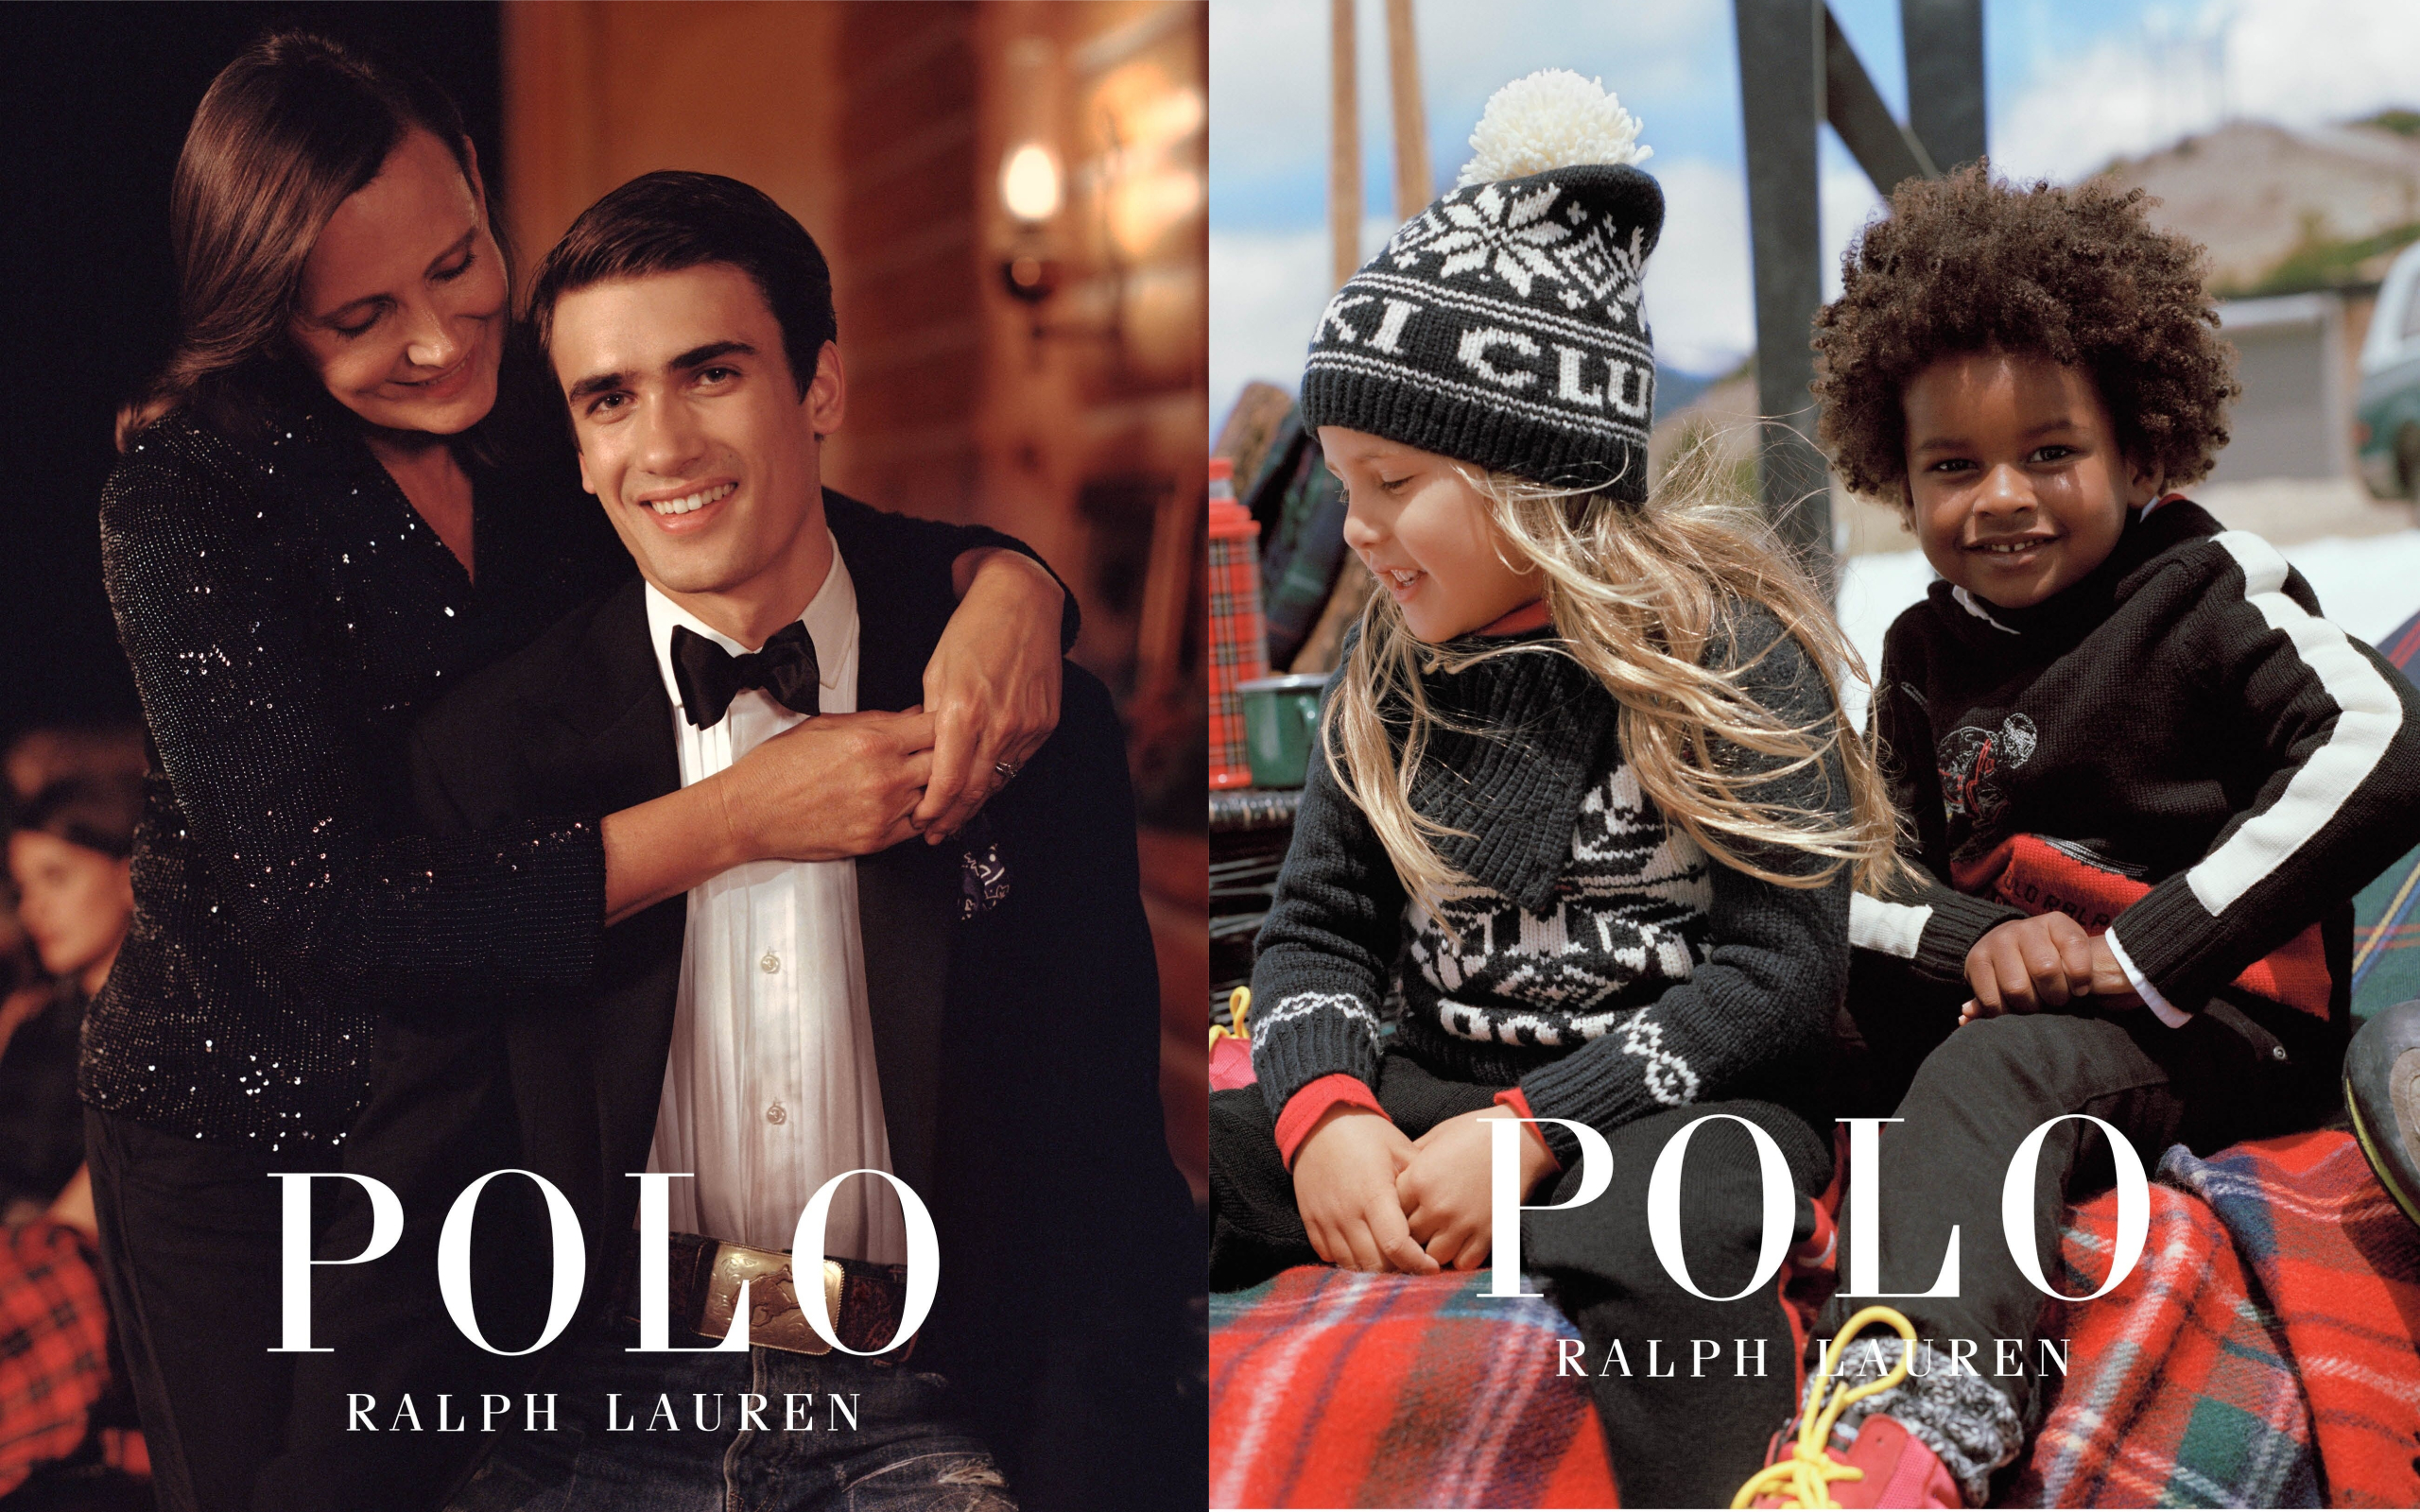 Polo Ralph Lauren 節慶系列 「Every Moment is a Gift」